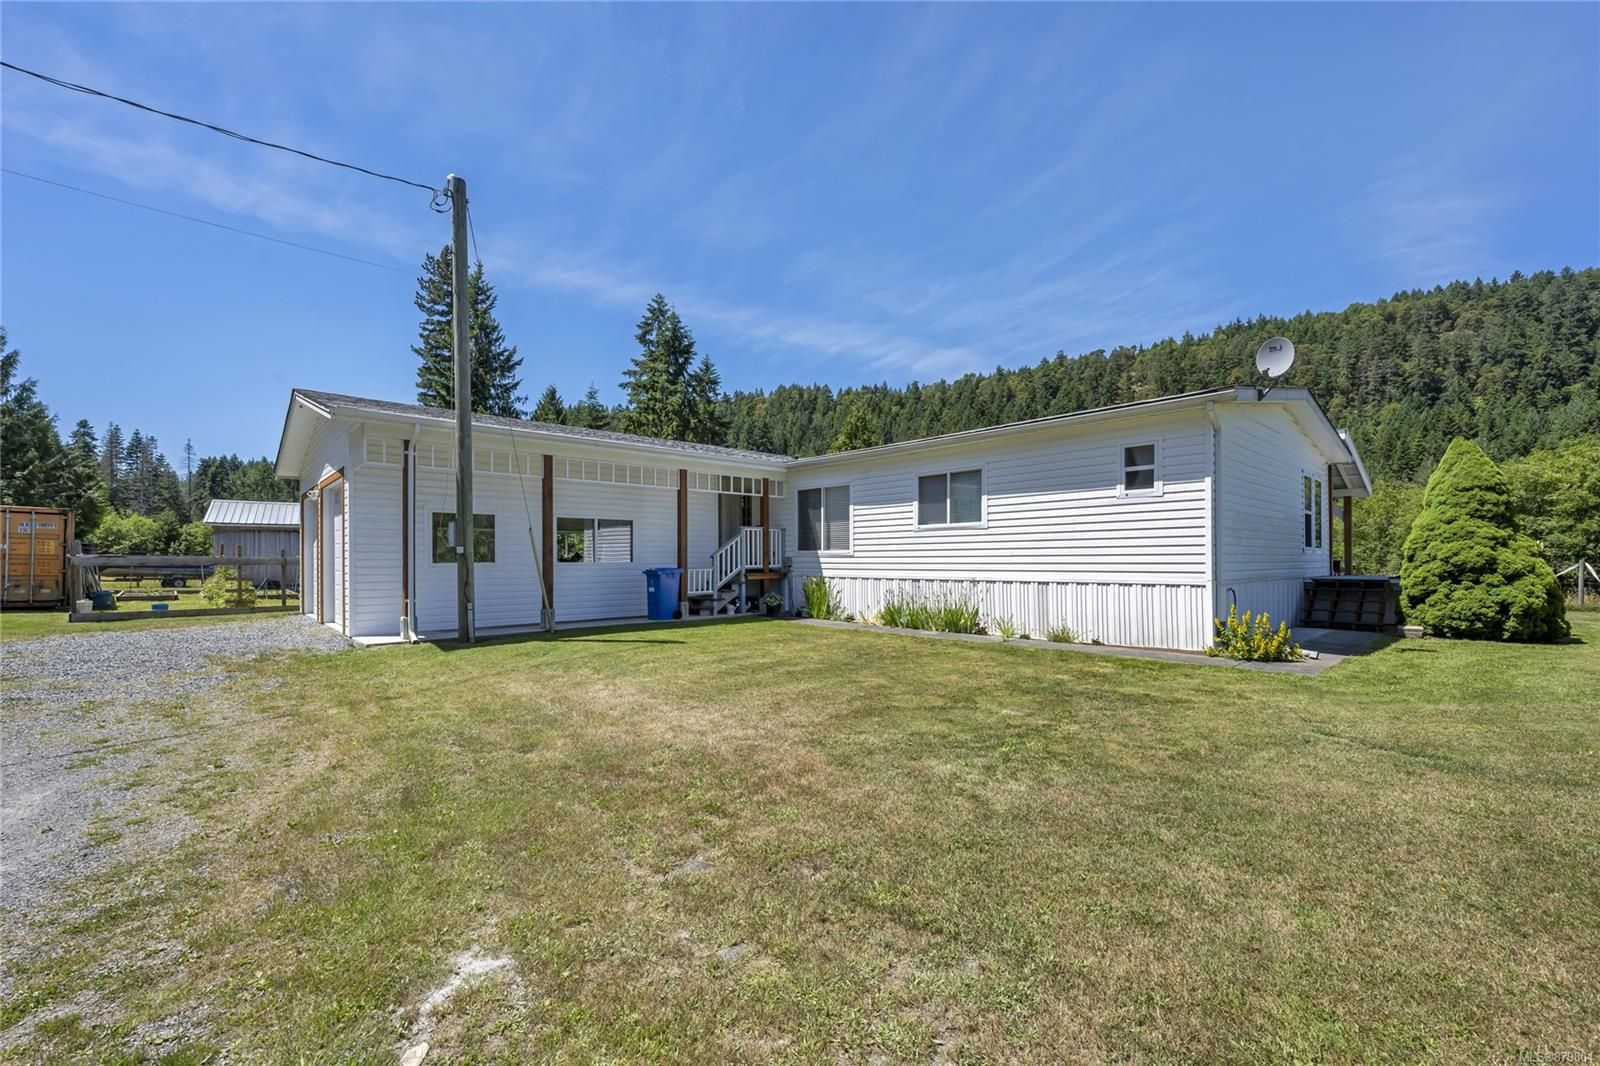 Photo 56: Photos: 3596 Riverside Rd in : ML Cobble Hill Manufactured Home for sale (Malahat & Area)  : MLS®# 879804